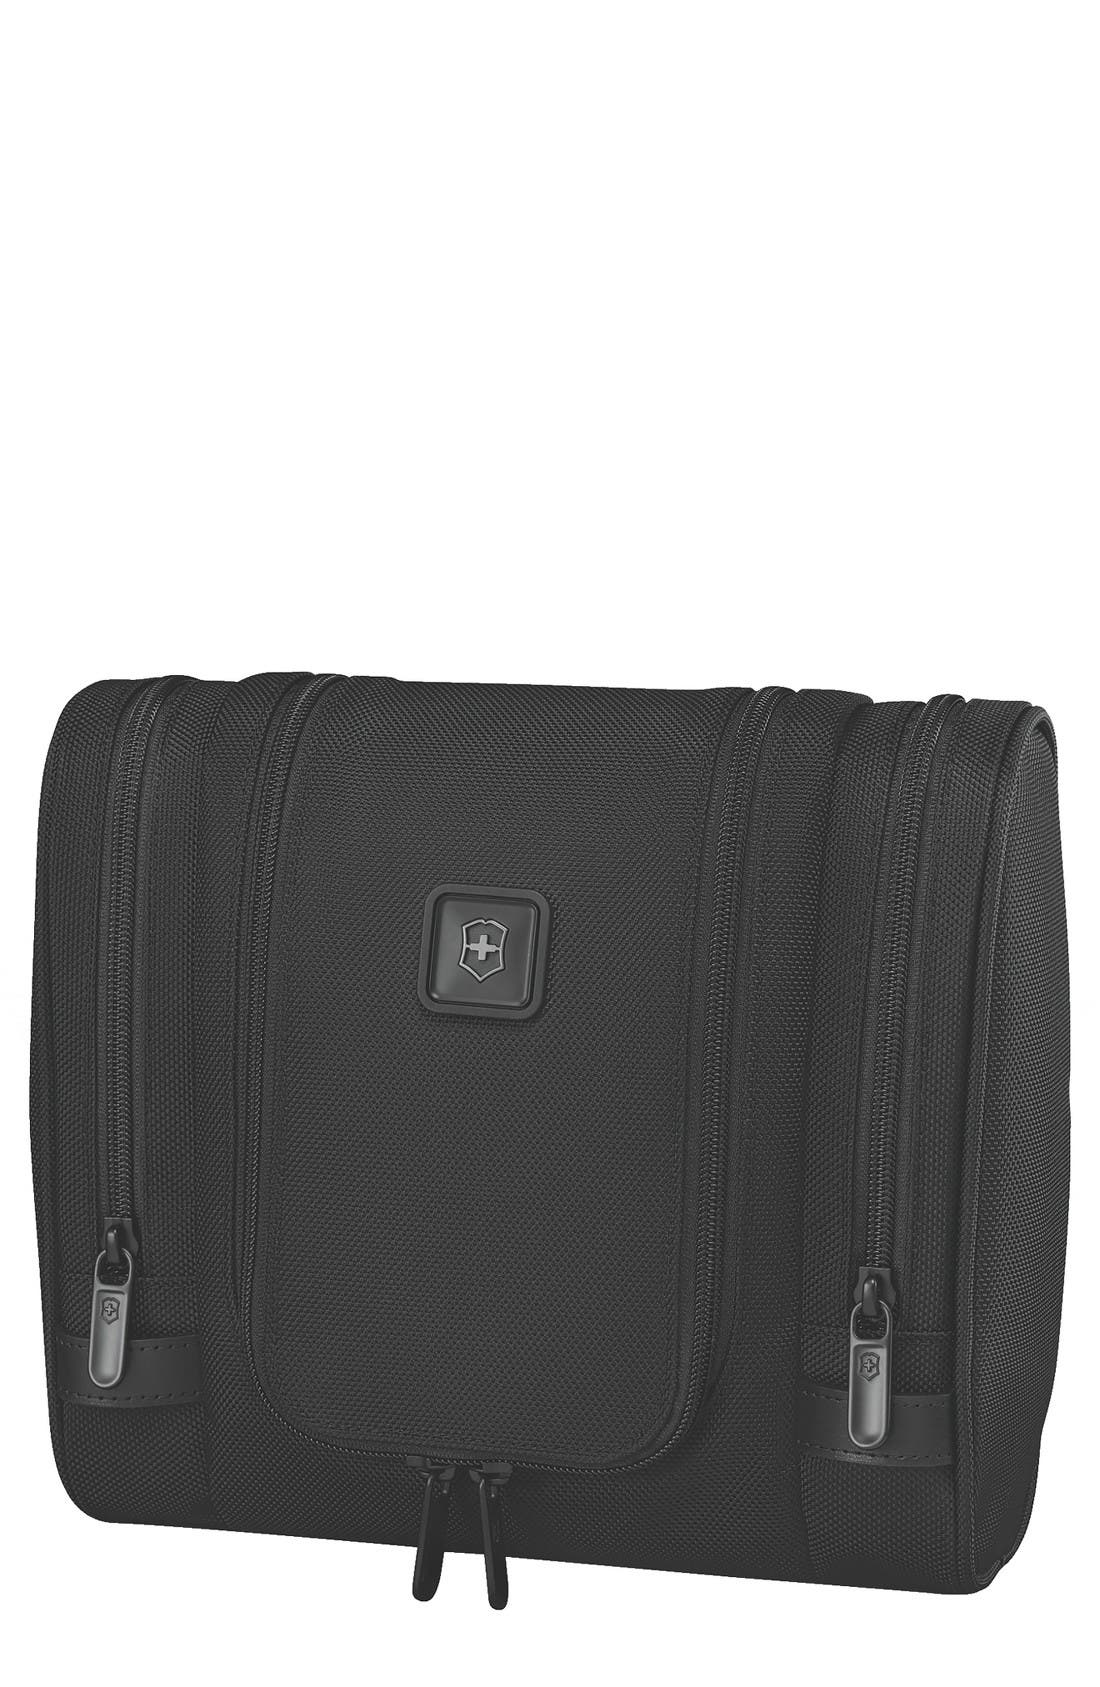 Lexicon 2.0 Hanging Travel Kit,                         Main,                         color, Black